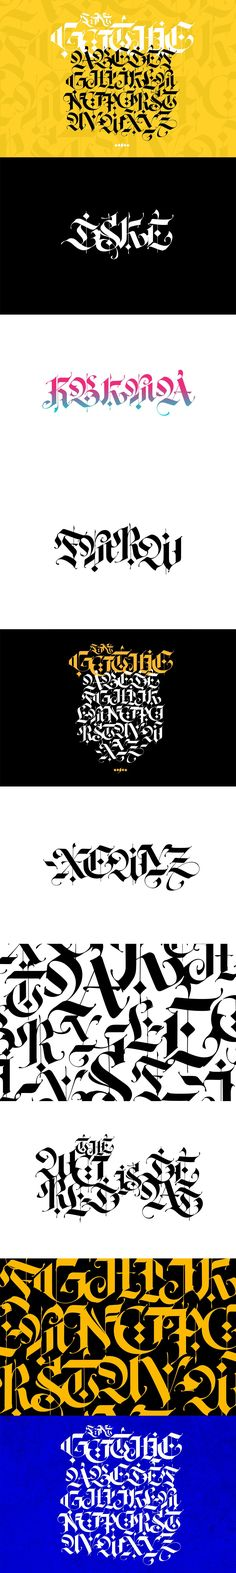 - Web & Graphic Design on SVG Ninja Gothic Fonts, Tattoo Lettering Fonts, Poster Templates, English Alphabet, Beautiful Fonts, Vector Format, Ninja, Letters, Graphic Design